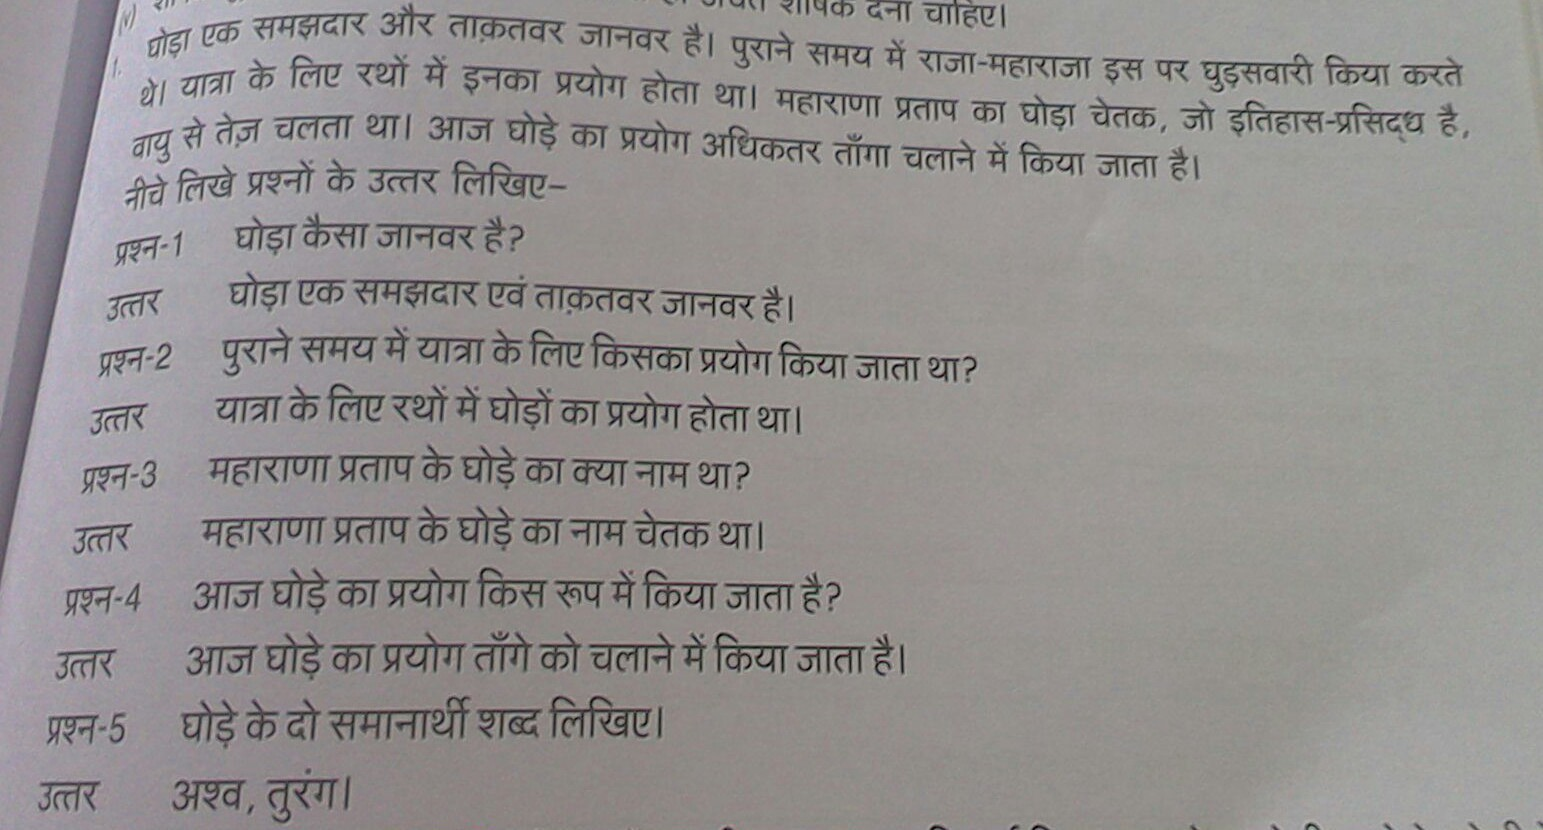 Class 3 Unseen Passage In Hindi With Questions Plz